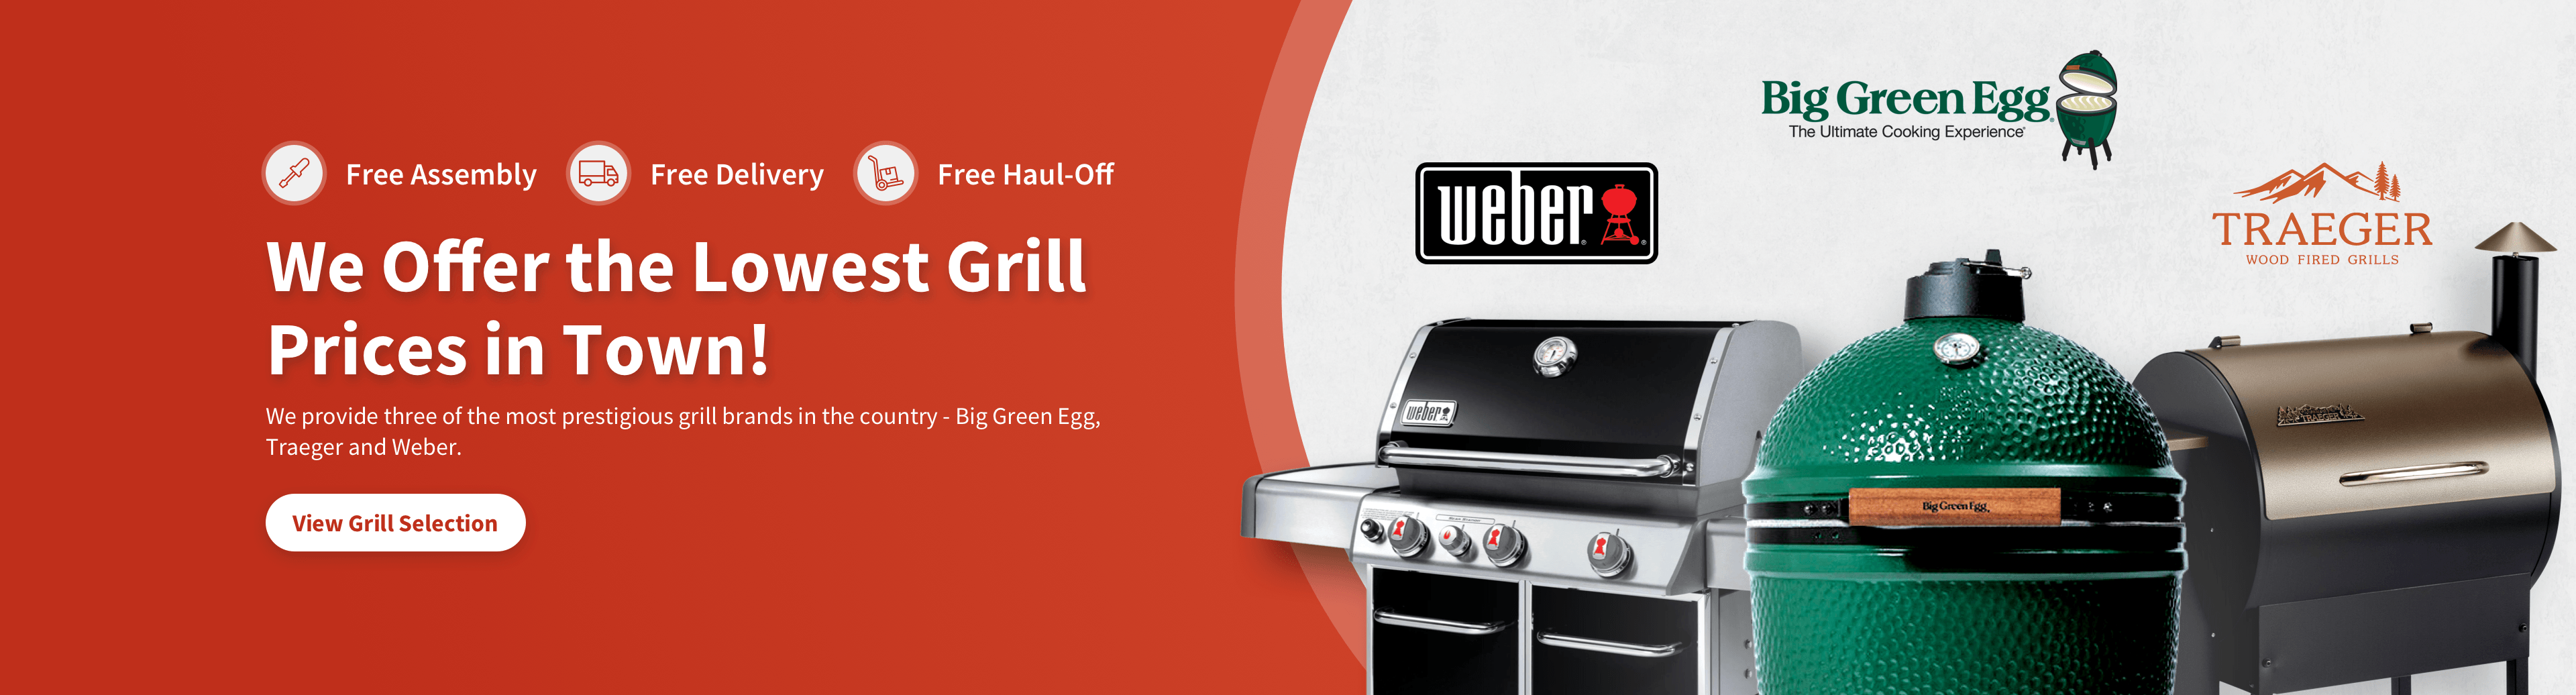 Shop Grills at Brownsboro Hardware. We Offer the Lowest Grill Prices in Town! Free Assembly. Free Delivery. Free Haul-Off. We provide three of the most prestigious grill brands in the country - Big Green Egg, Traeger and Weber. View Grill Selection.